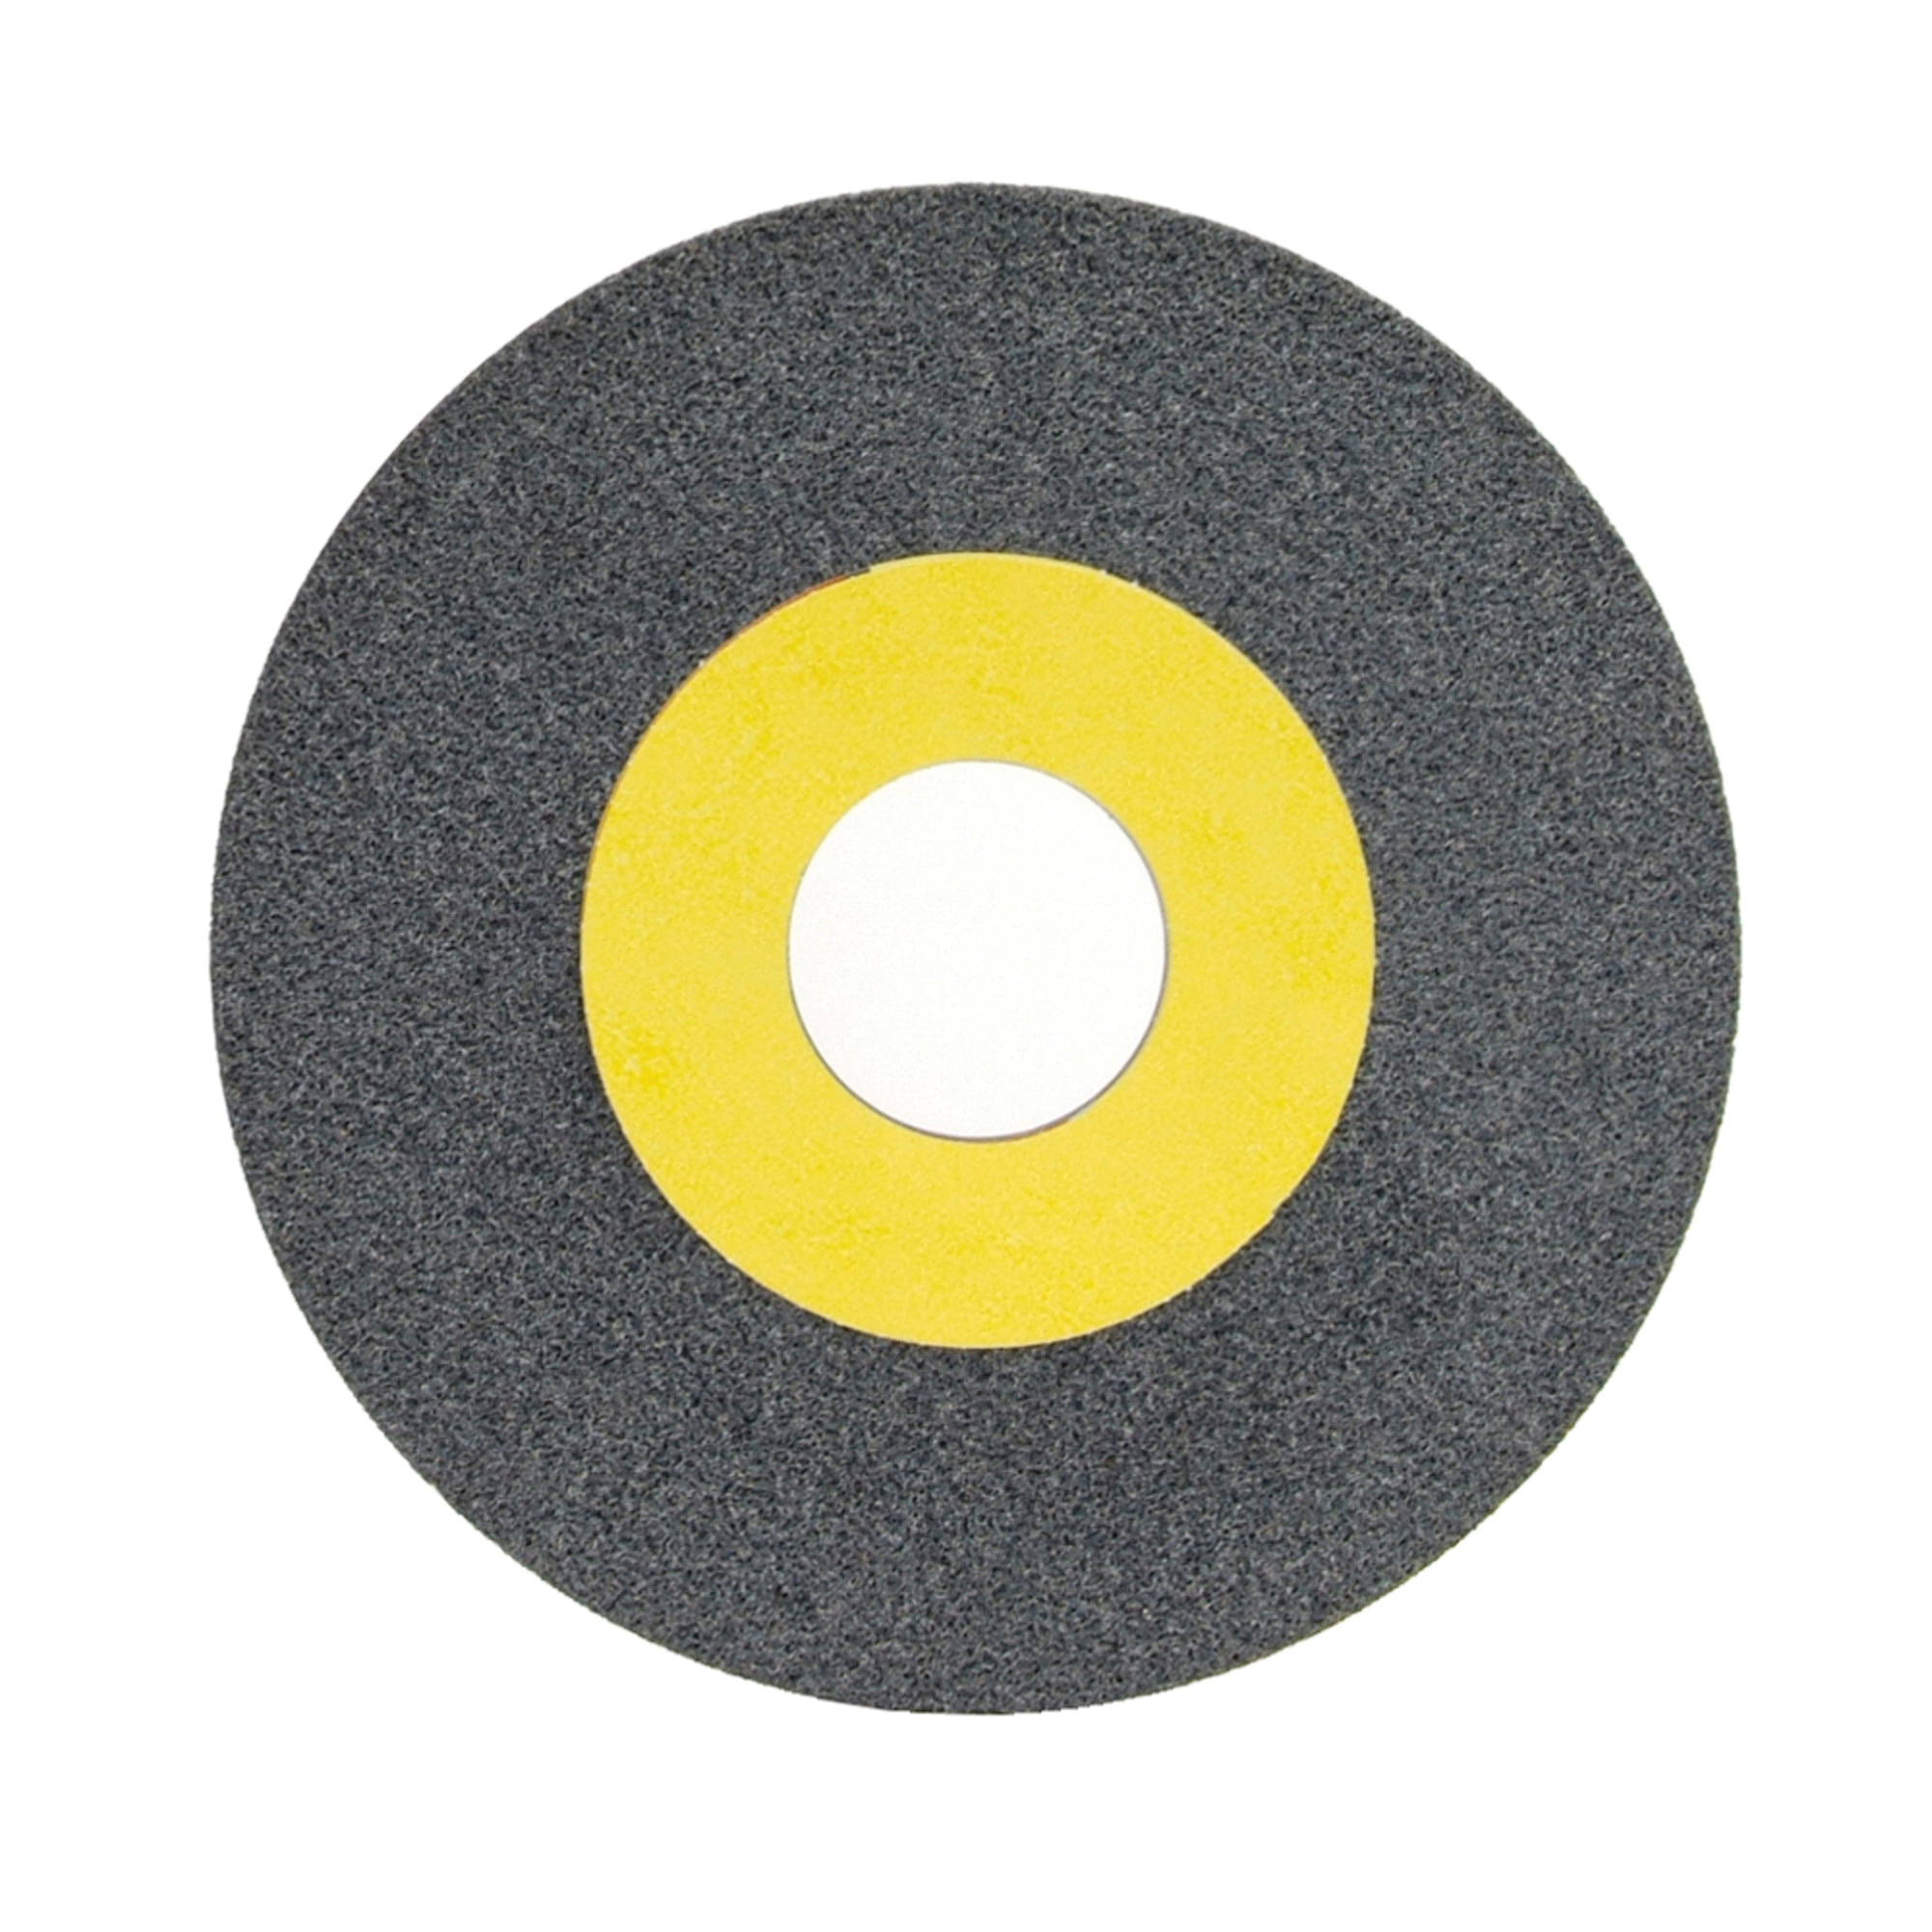 Norton® 66253262392 32A Straight Toolroom Wheel, 12 in Dia x 3/4 in THK, 3 in Center Hole, 46 Grit, Aluminum Oxide Abrasive